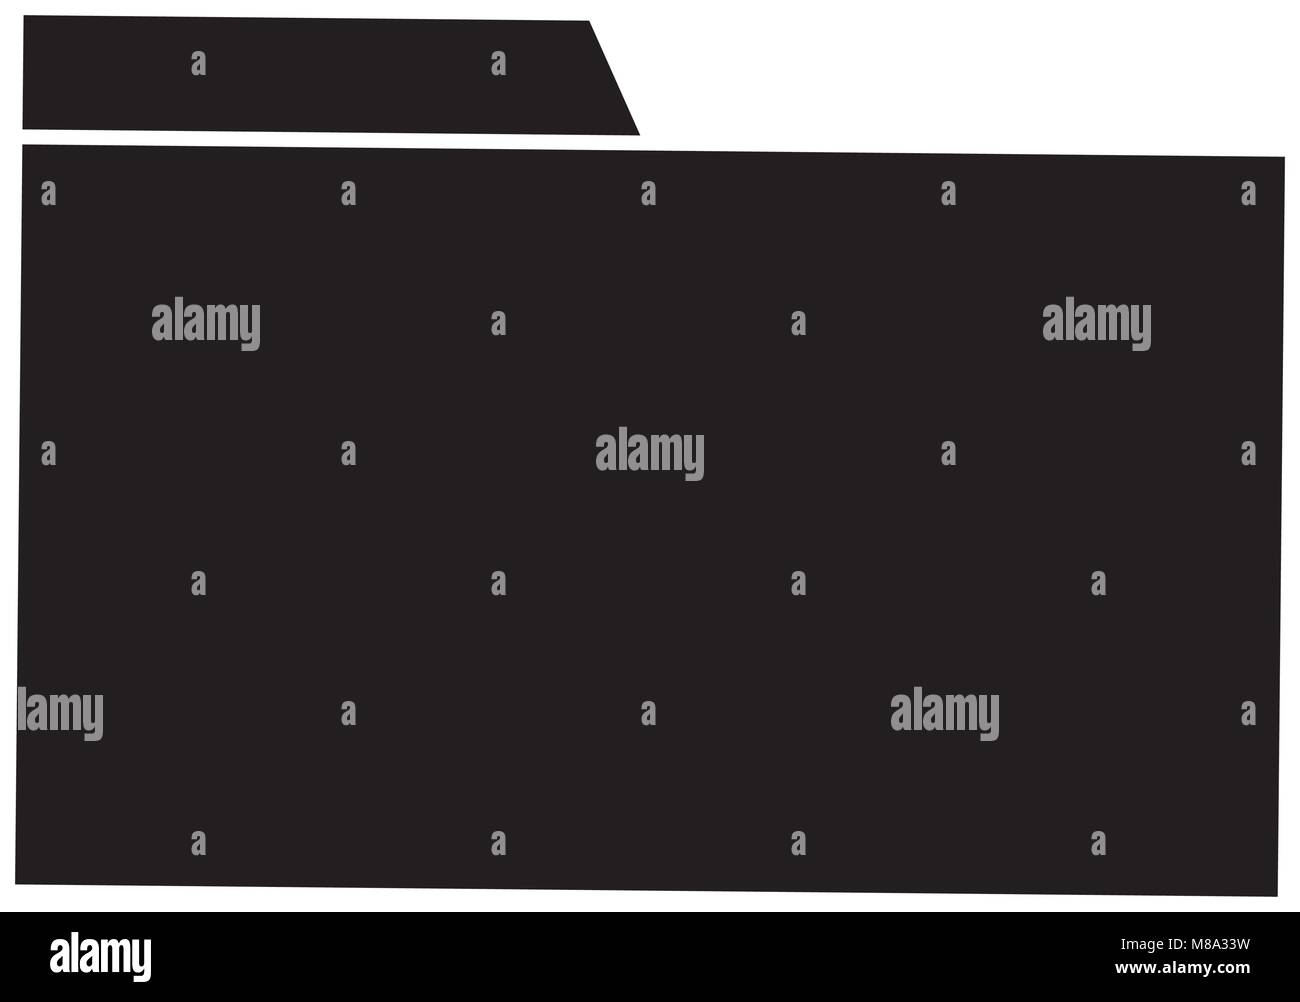 silhouette file folder archive to organize information - Stock Image